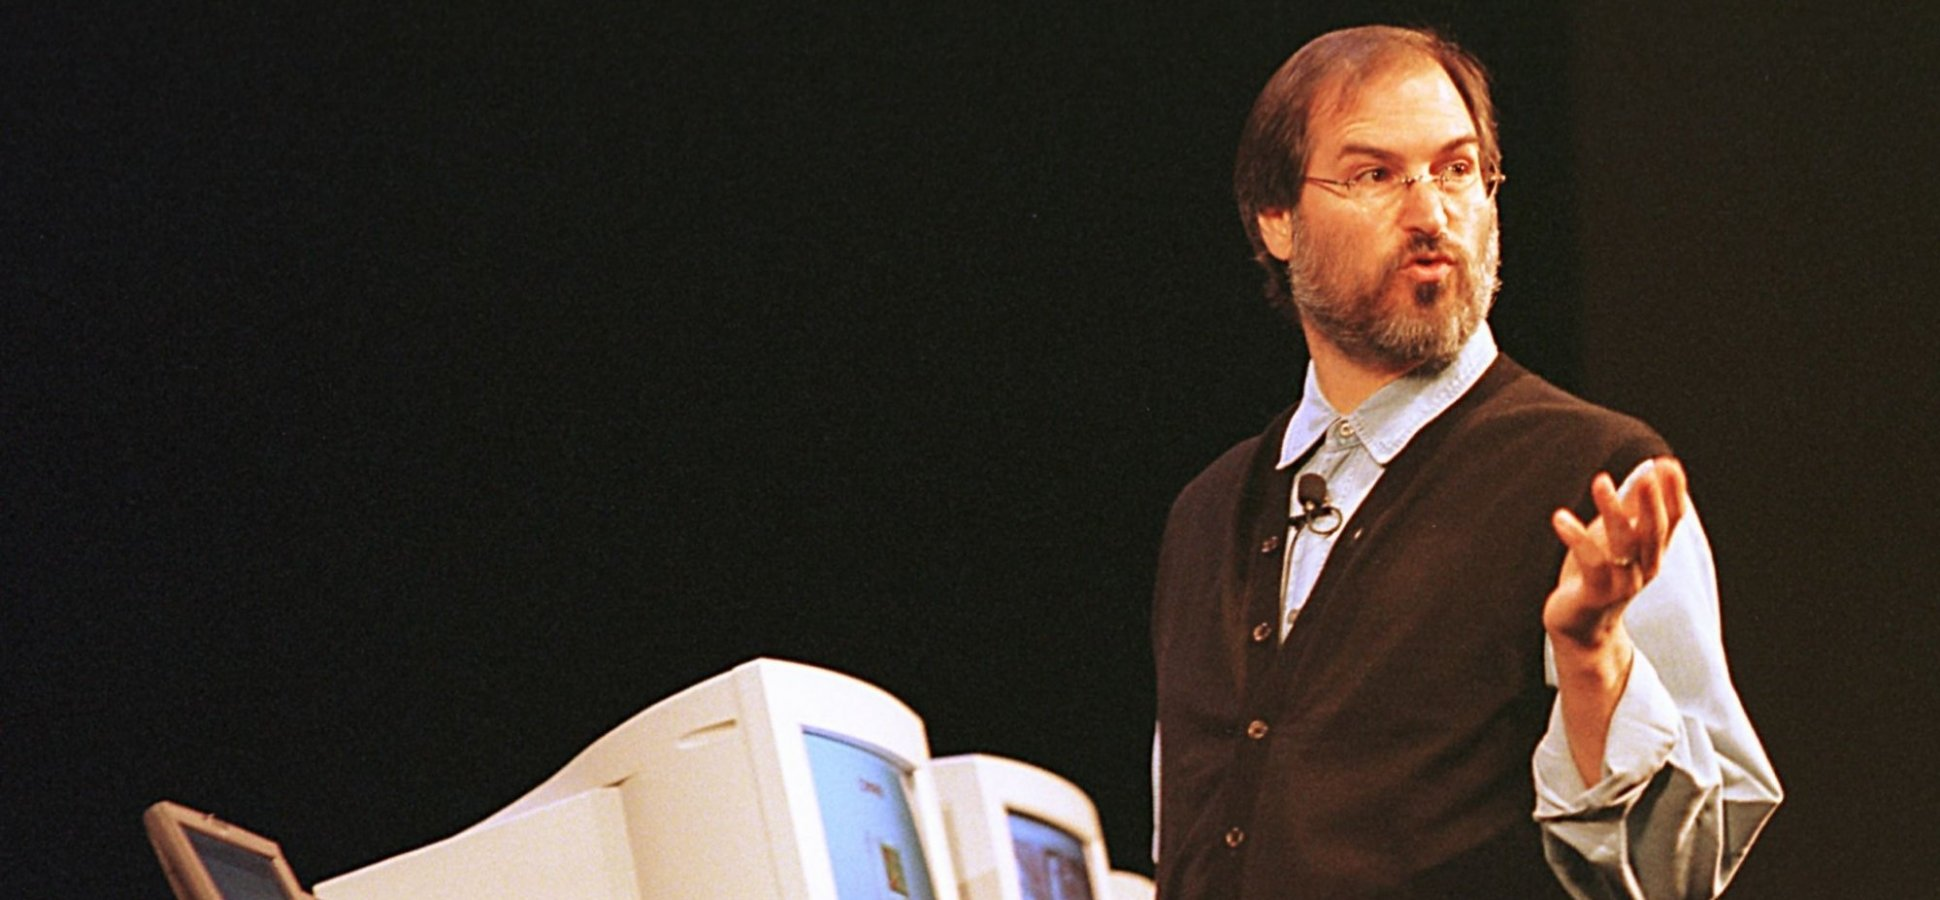 It Took Steve Jobs Less Than 60 Seconds to Share the Best Leadership Advice You'll Hear Today